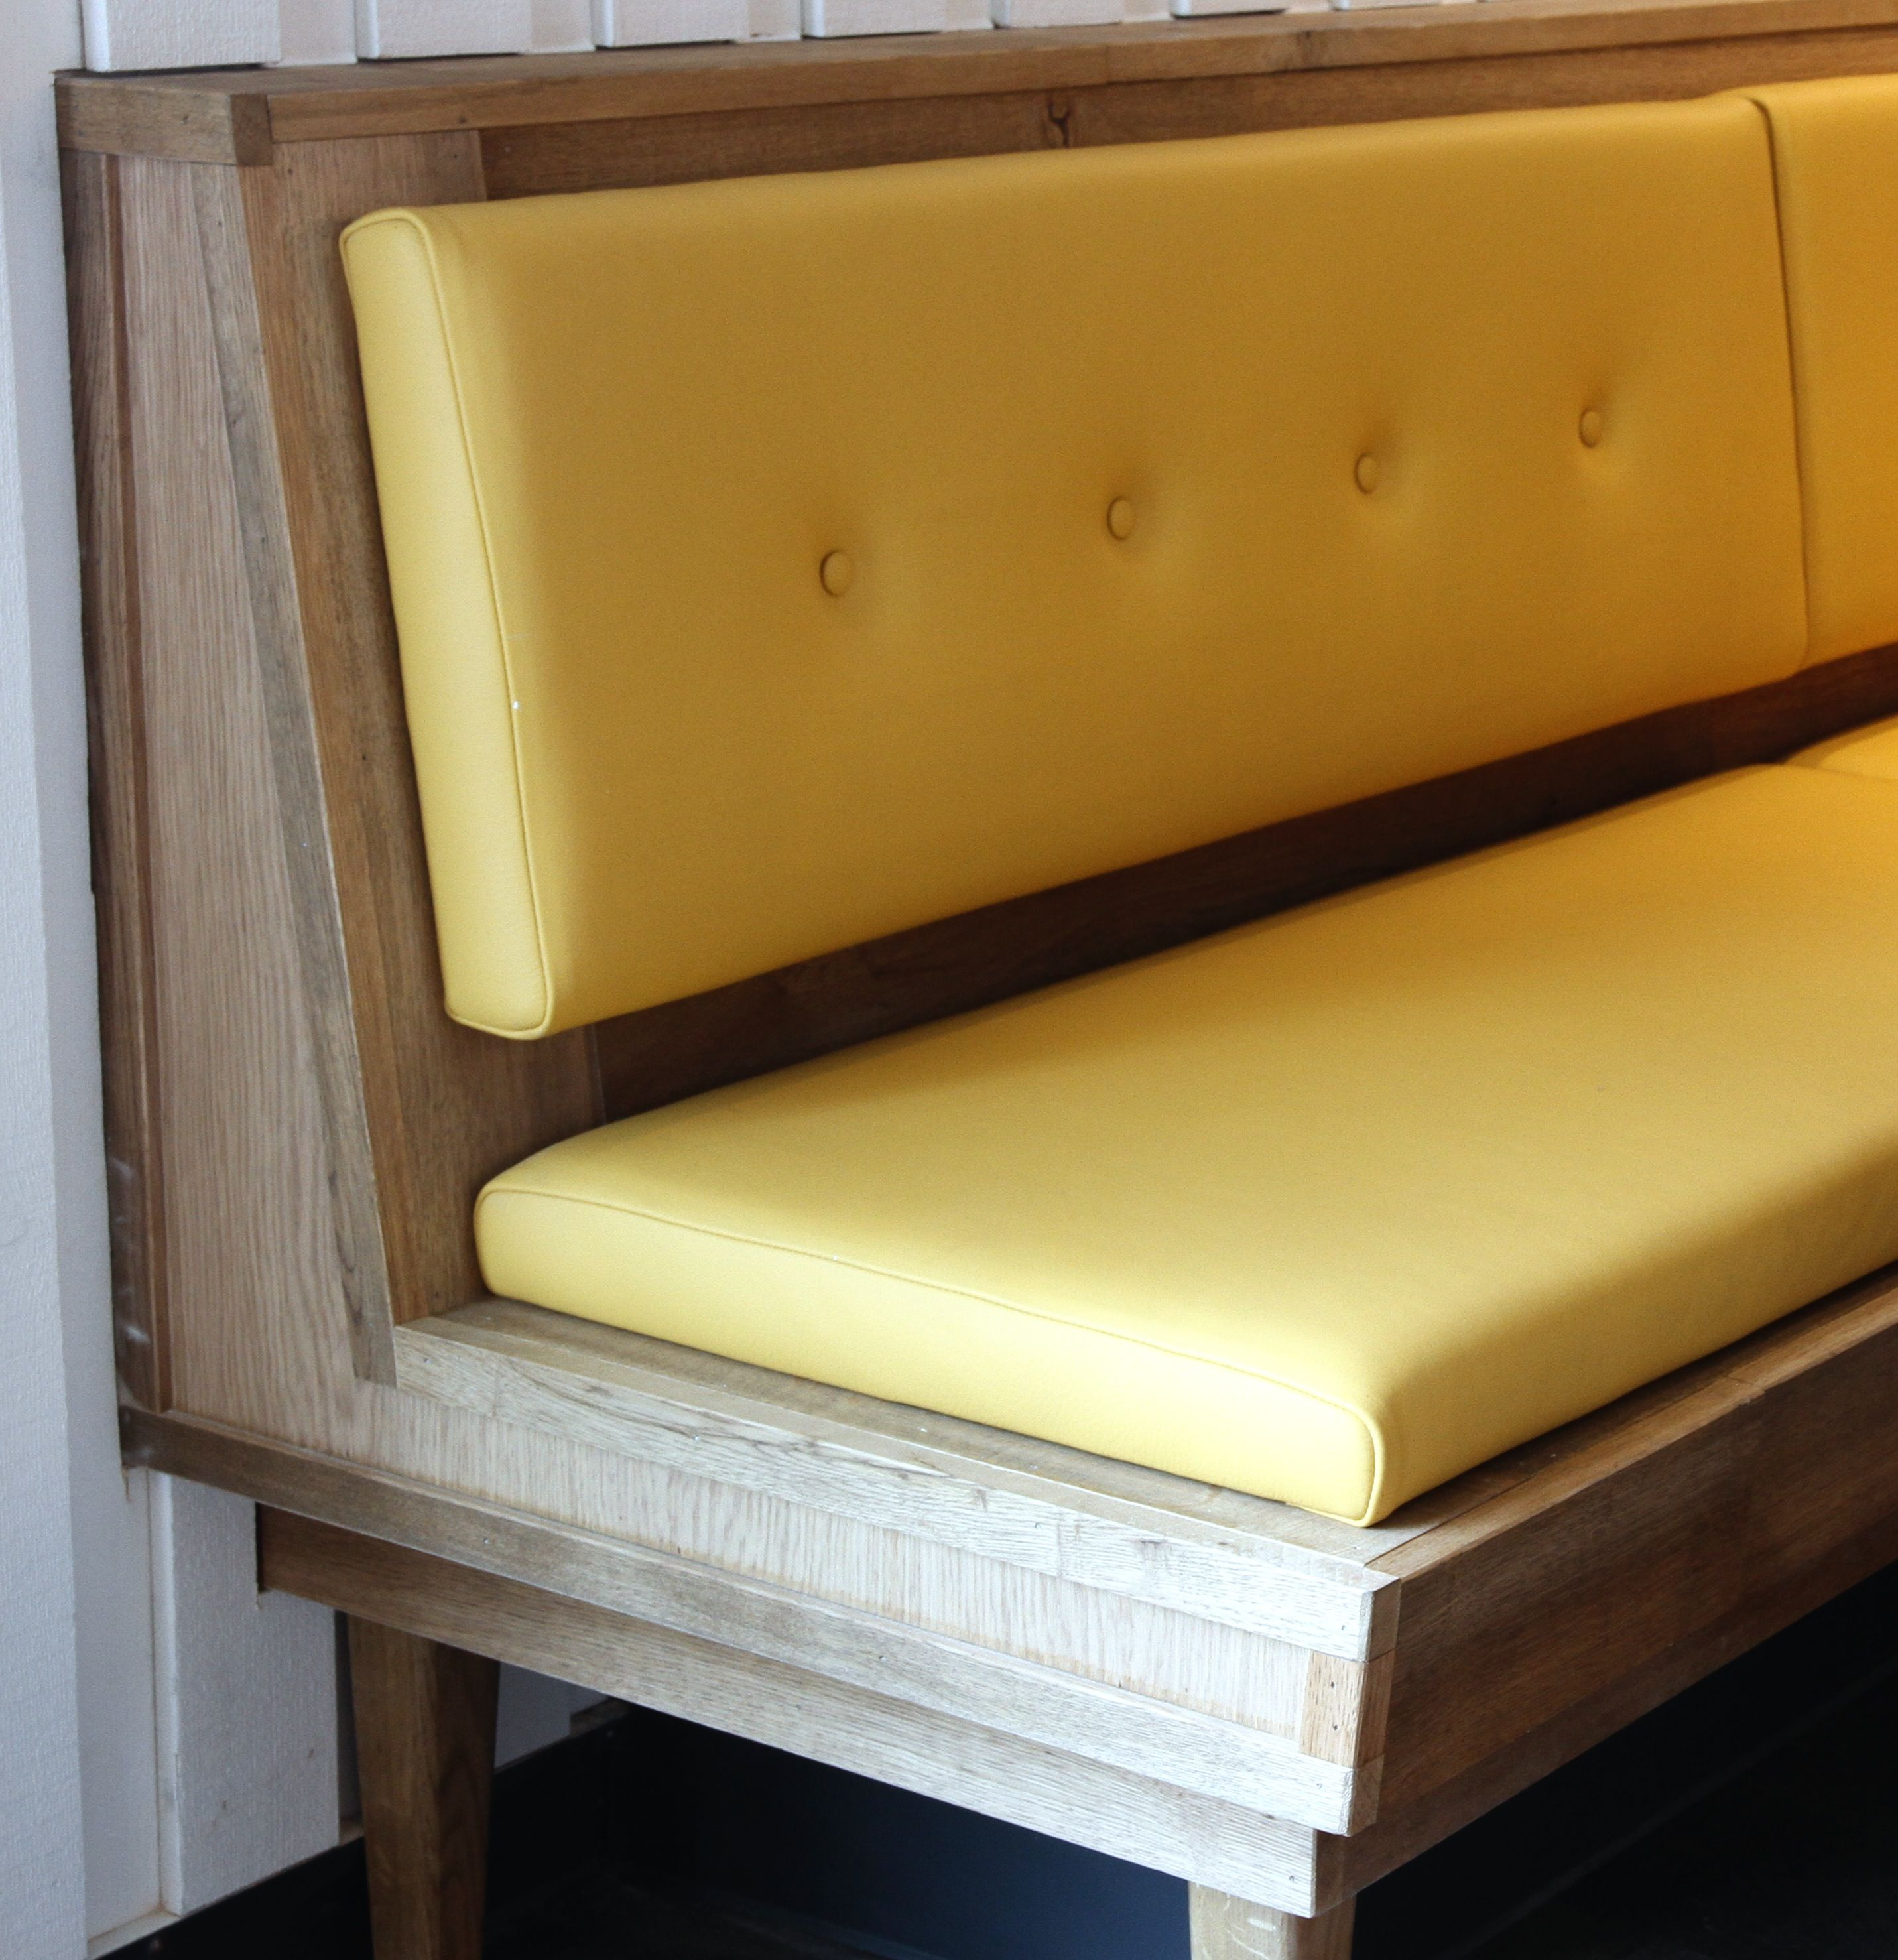 Banquette Bench Adding Coziness And Warmth To Your